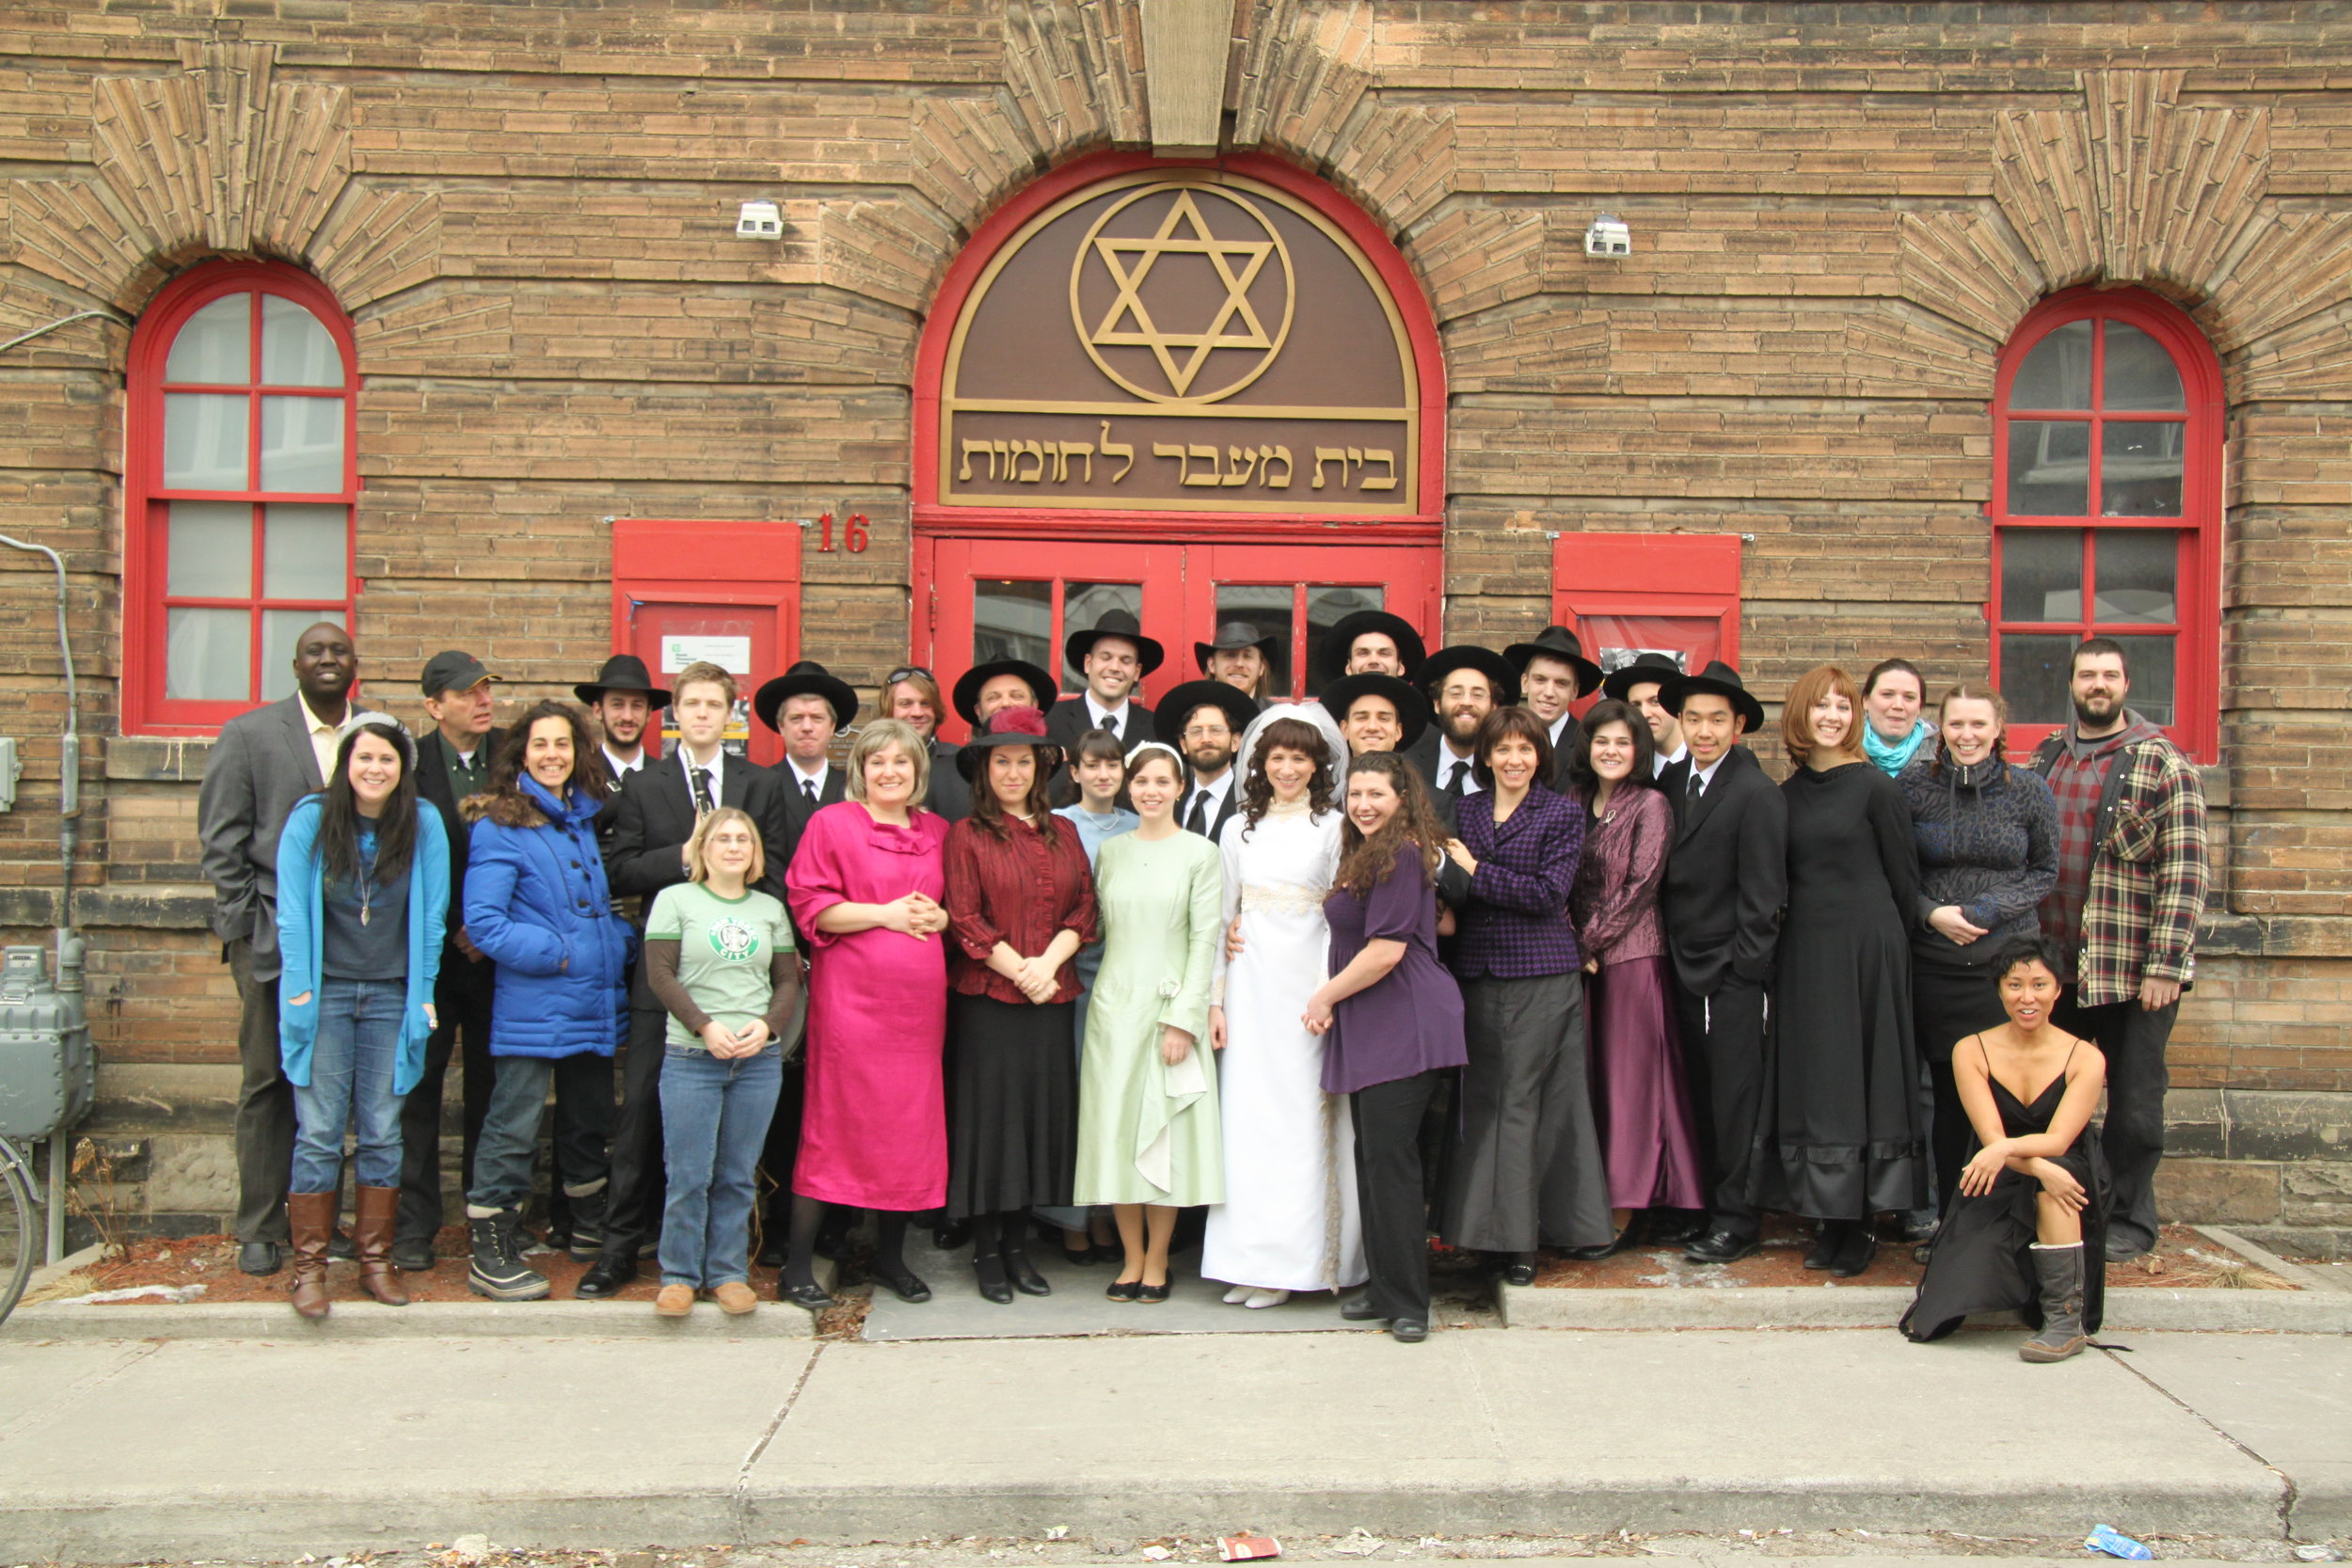 Outside Theatre Passe Muraille, turned Synagogue: Full Cast, Creative Team, and TPM Staff